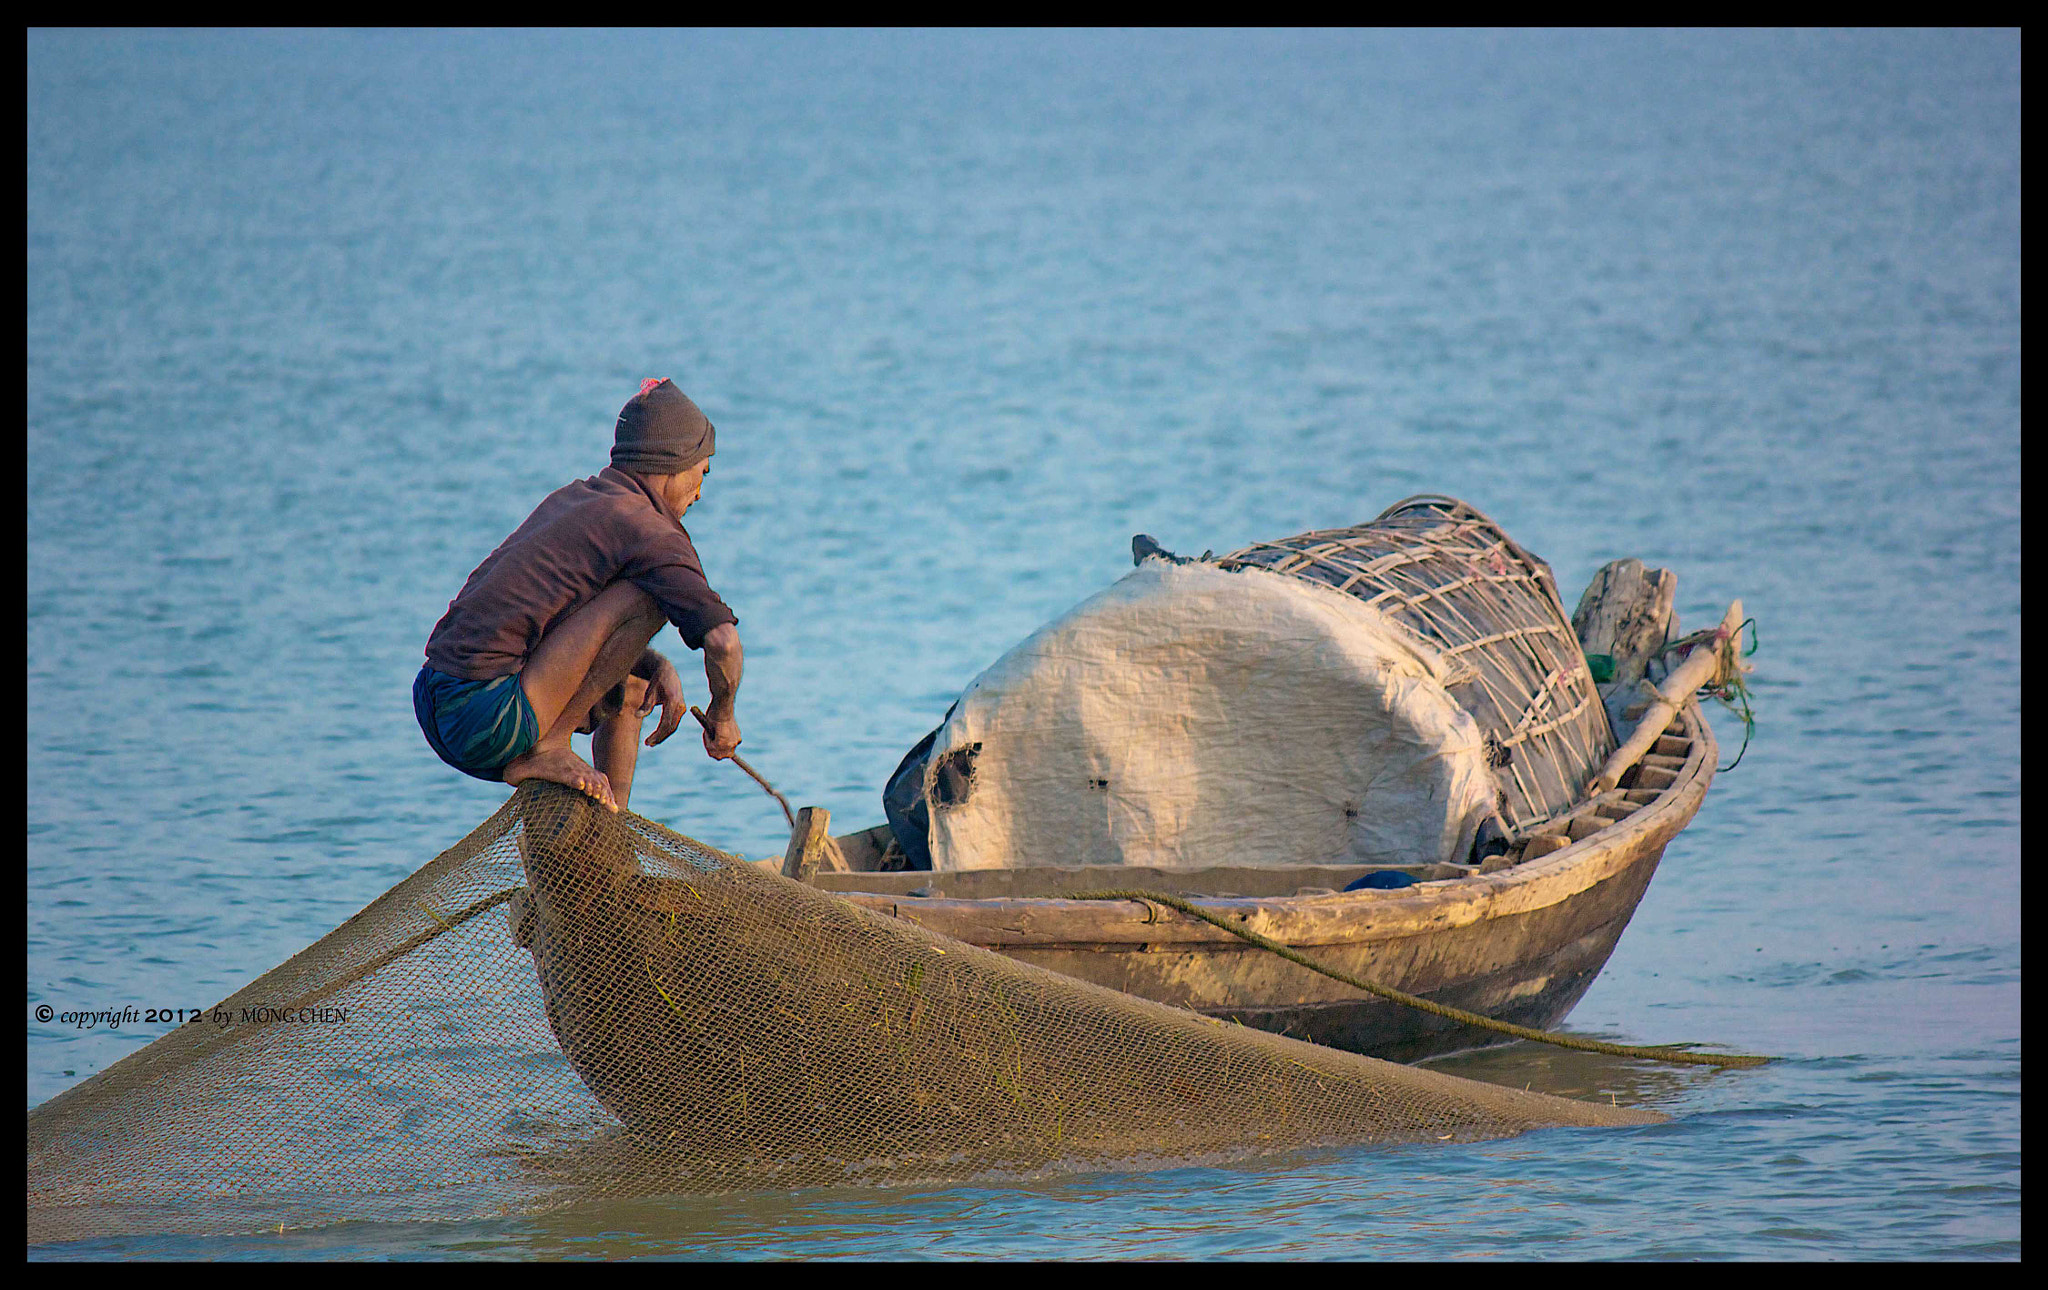 Photograph Fishing by Mong Chen on 500px